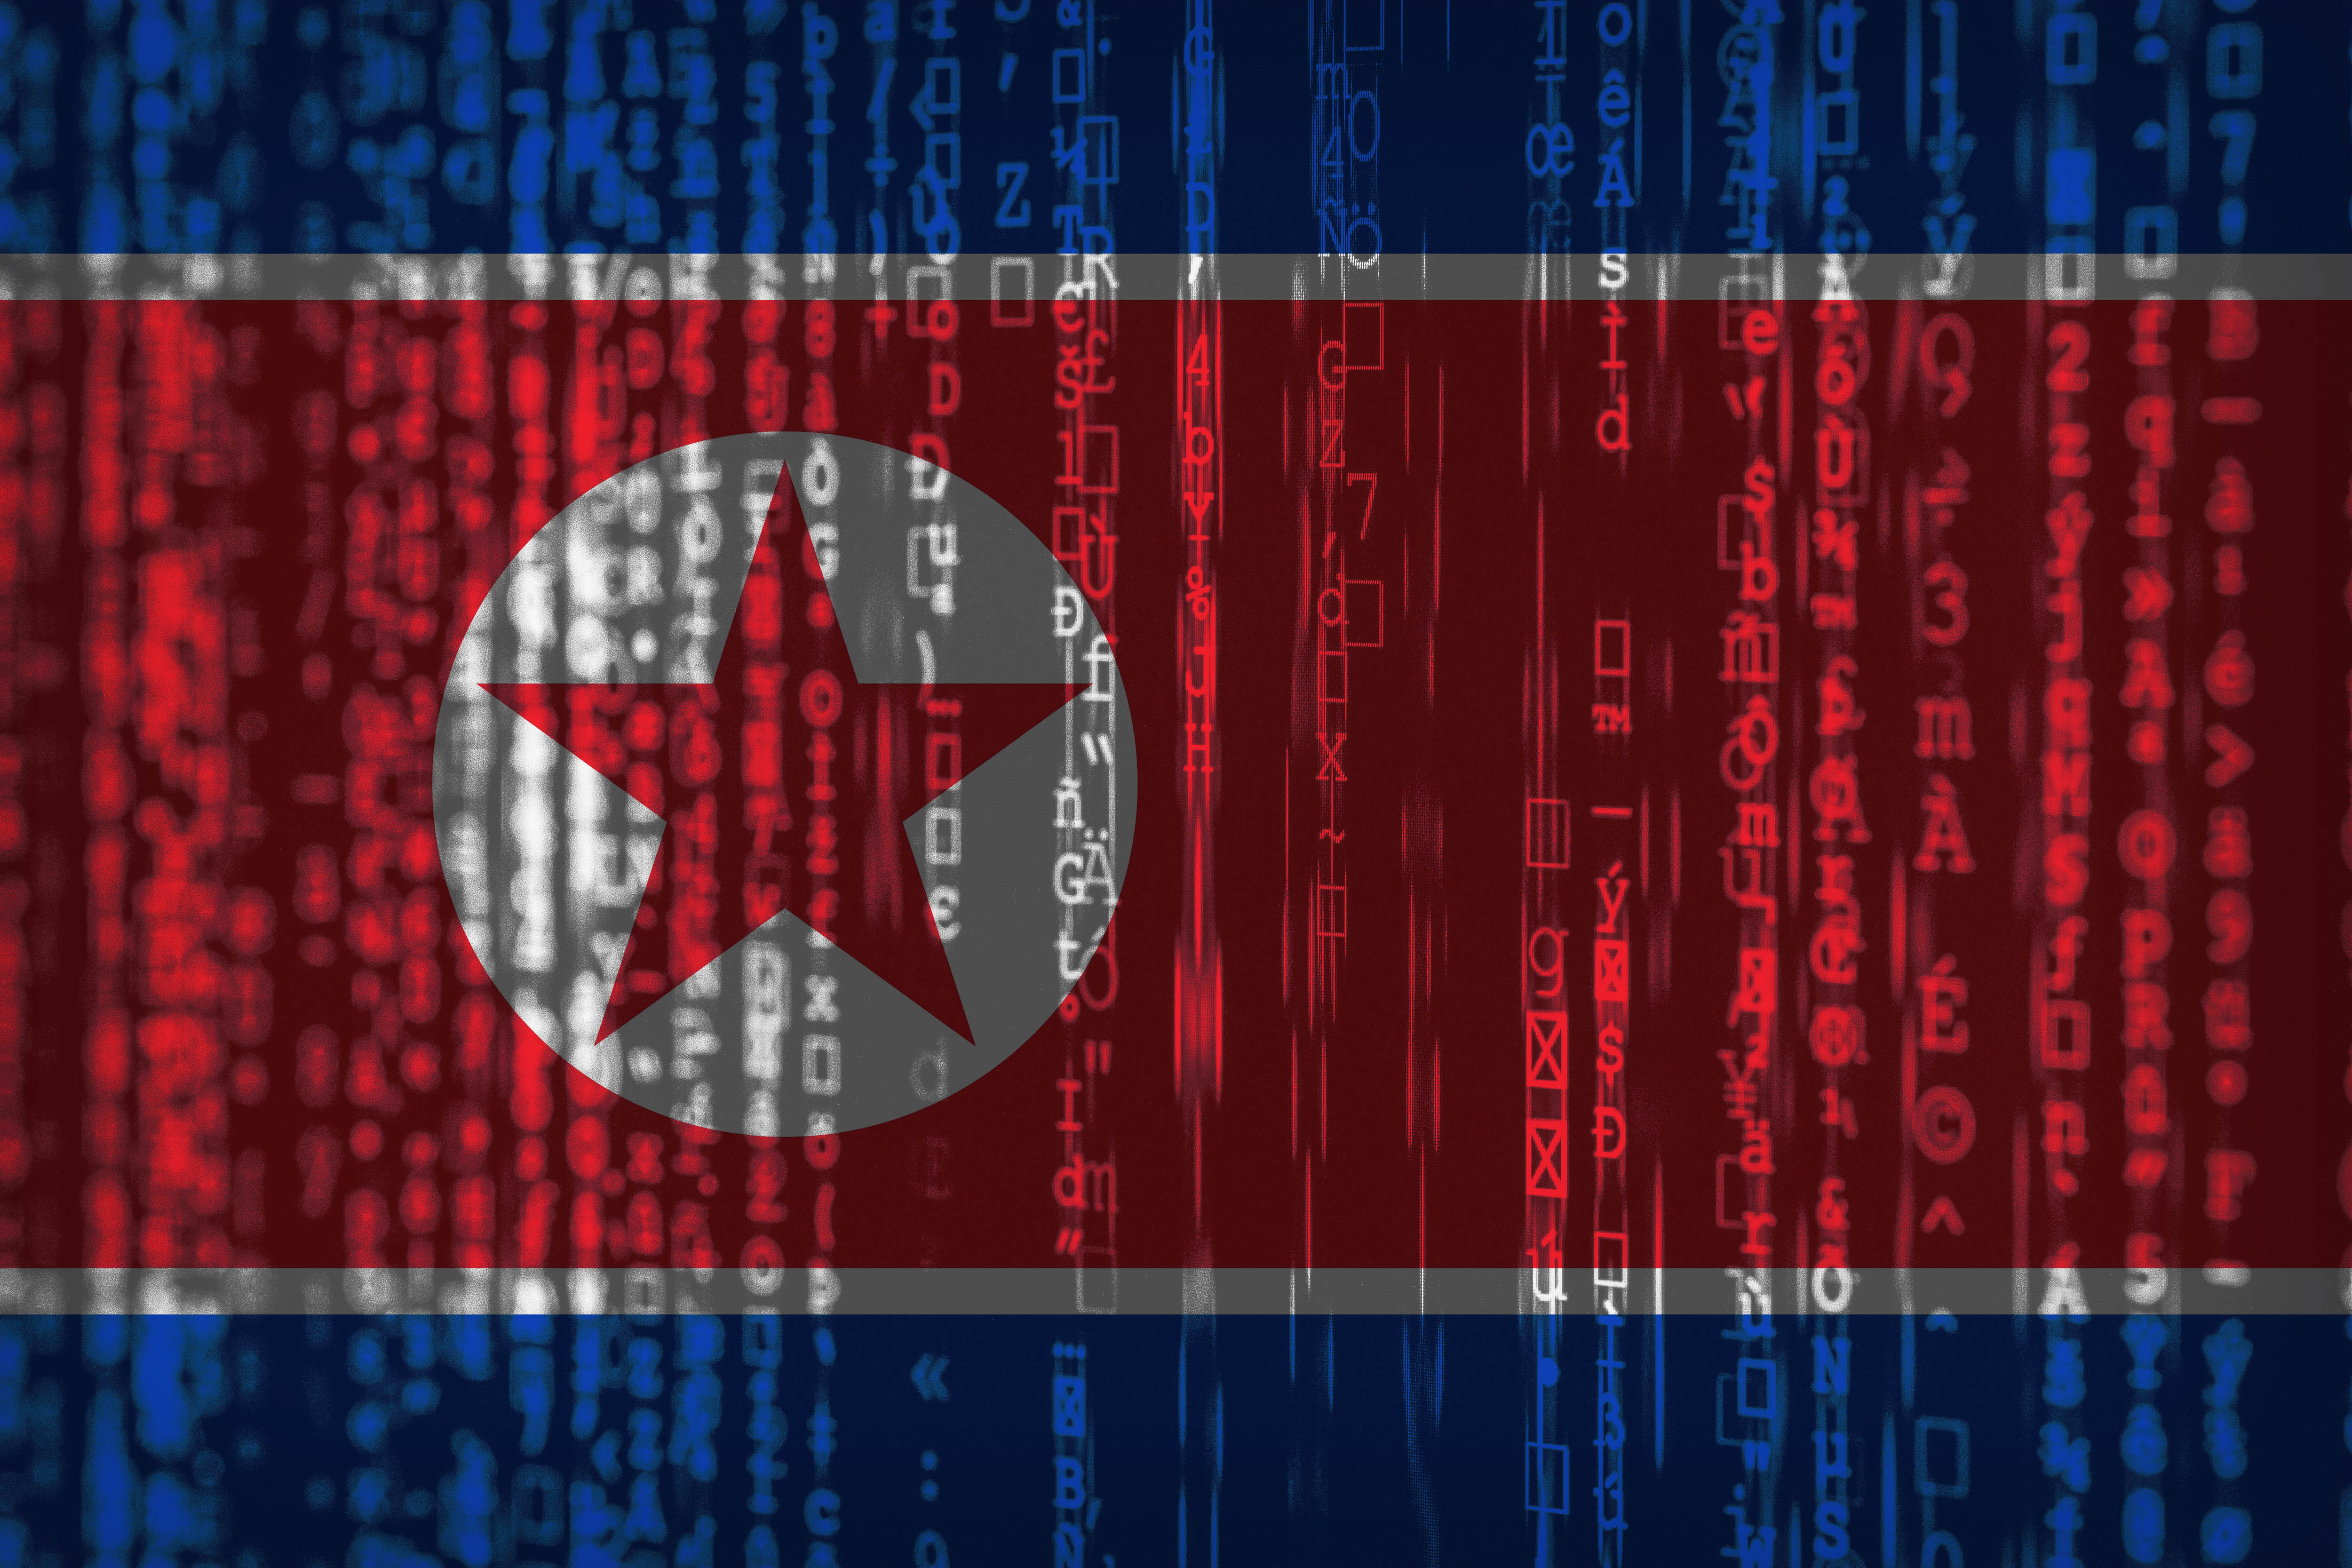 north korea hacks banks cryptocurrencies for funds un finds